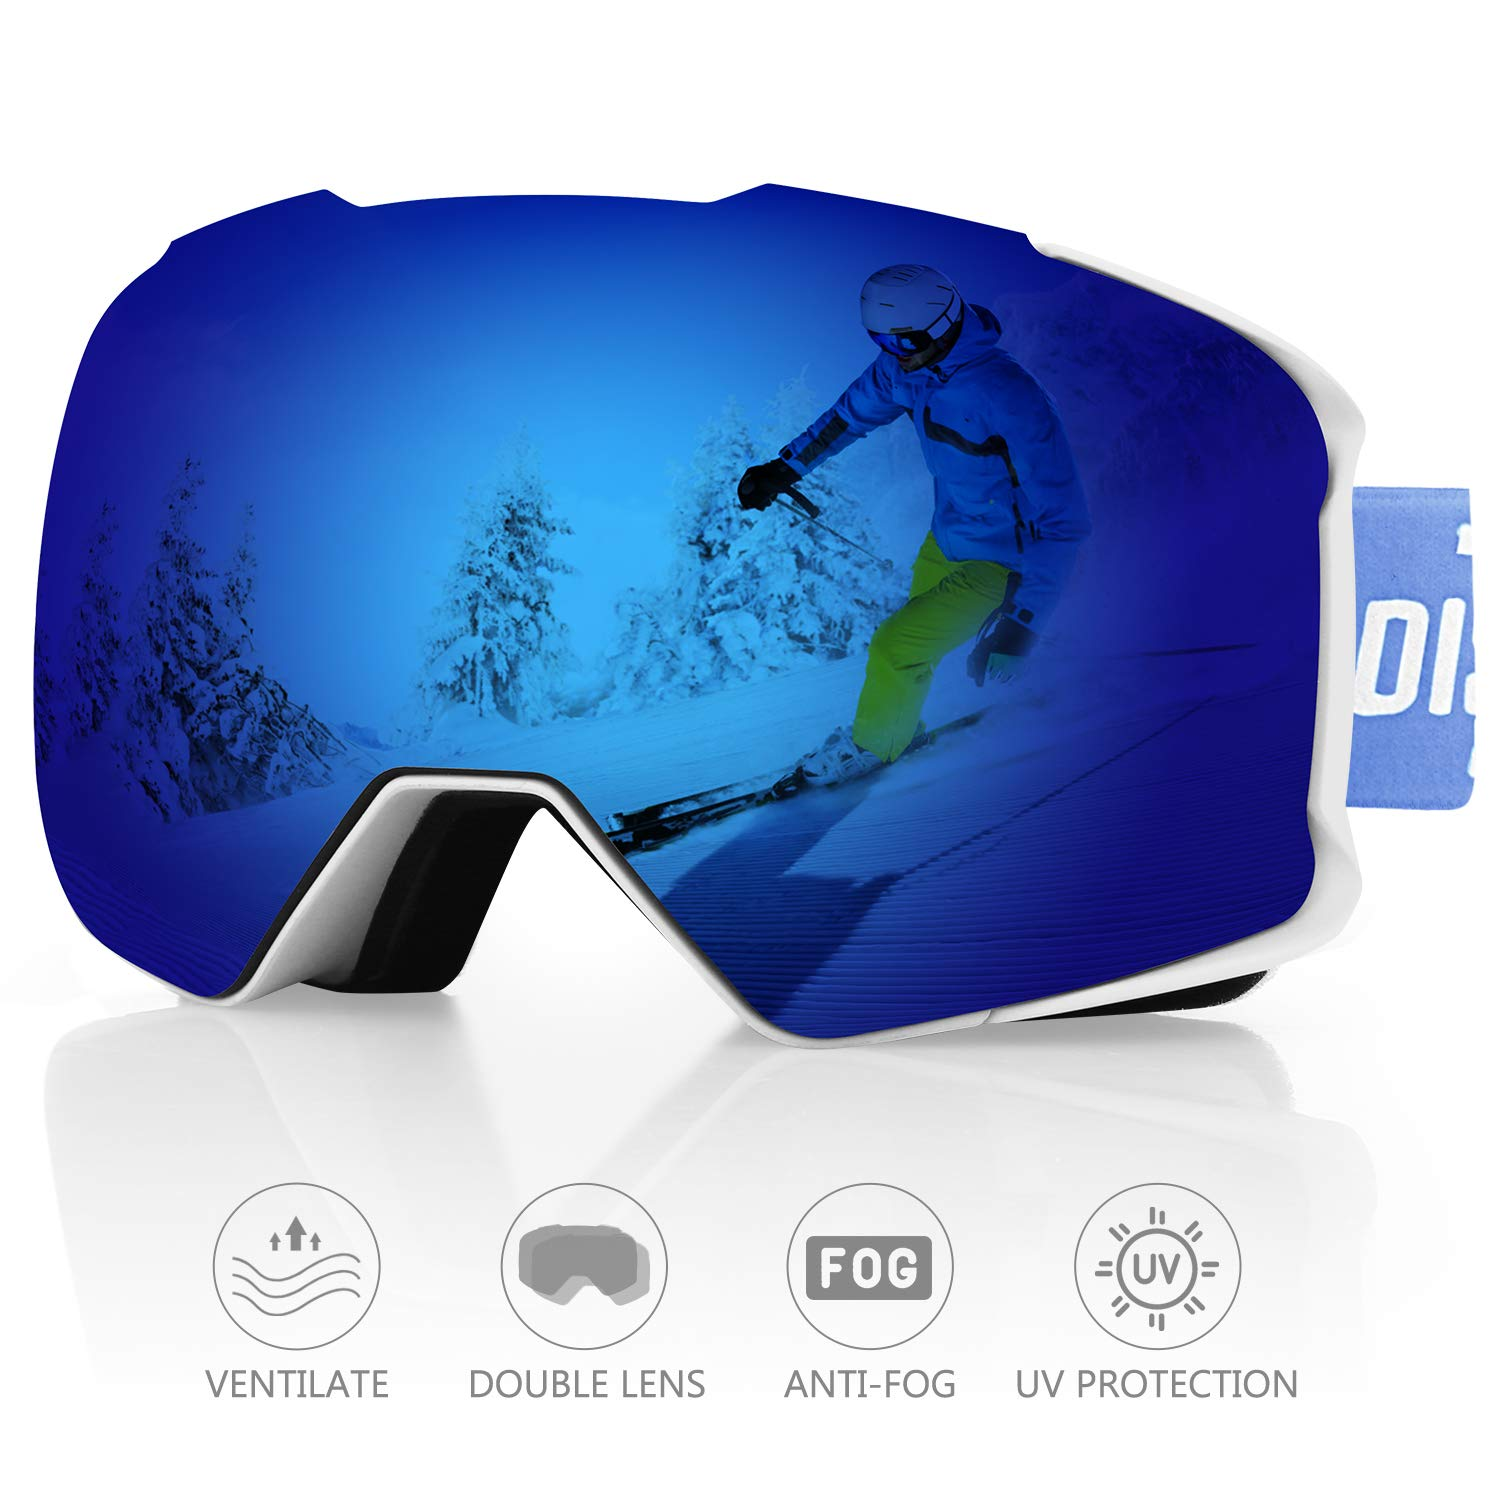 DISUPPO Snowboard Goggles, Ski Goggles with Hyperboloid Anti-Fog Dual Lens,Winter Snow Sports Goggles 100% UV400 Protection, Windproof Impact-Resistant Anti-Glare for Men, Women & Youth